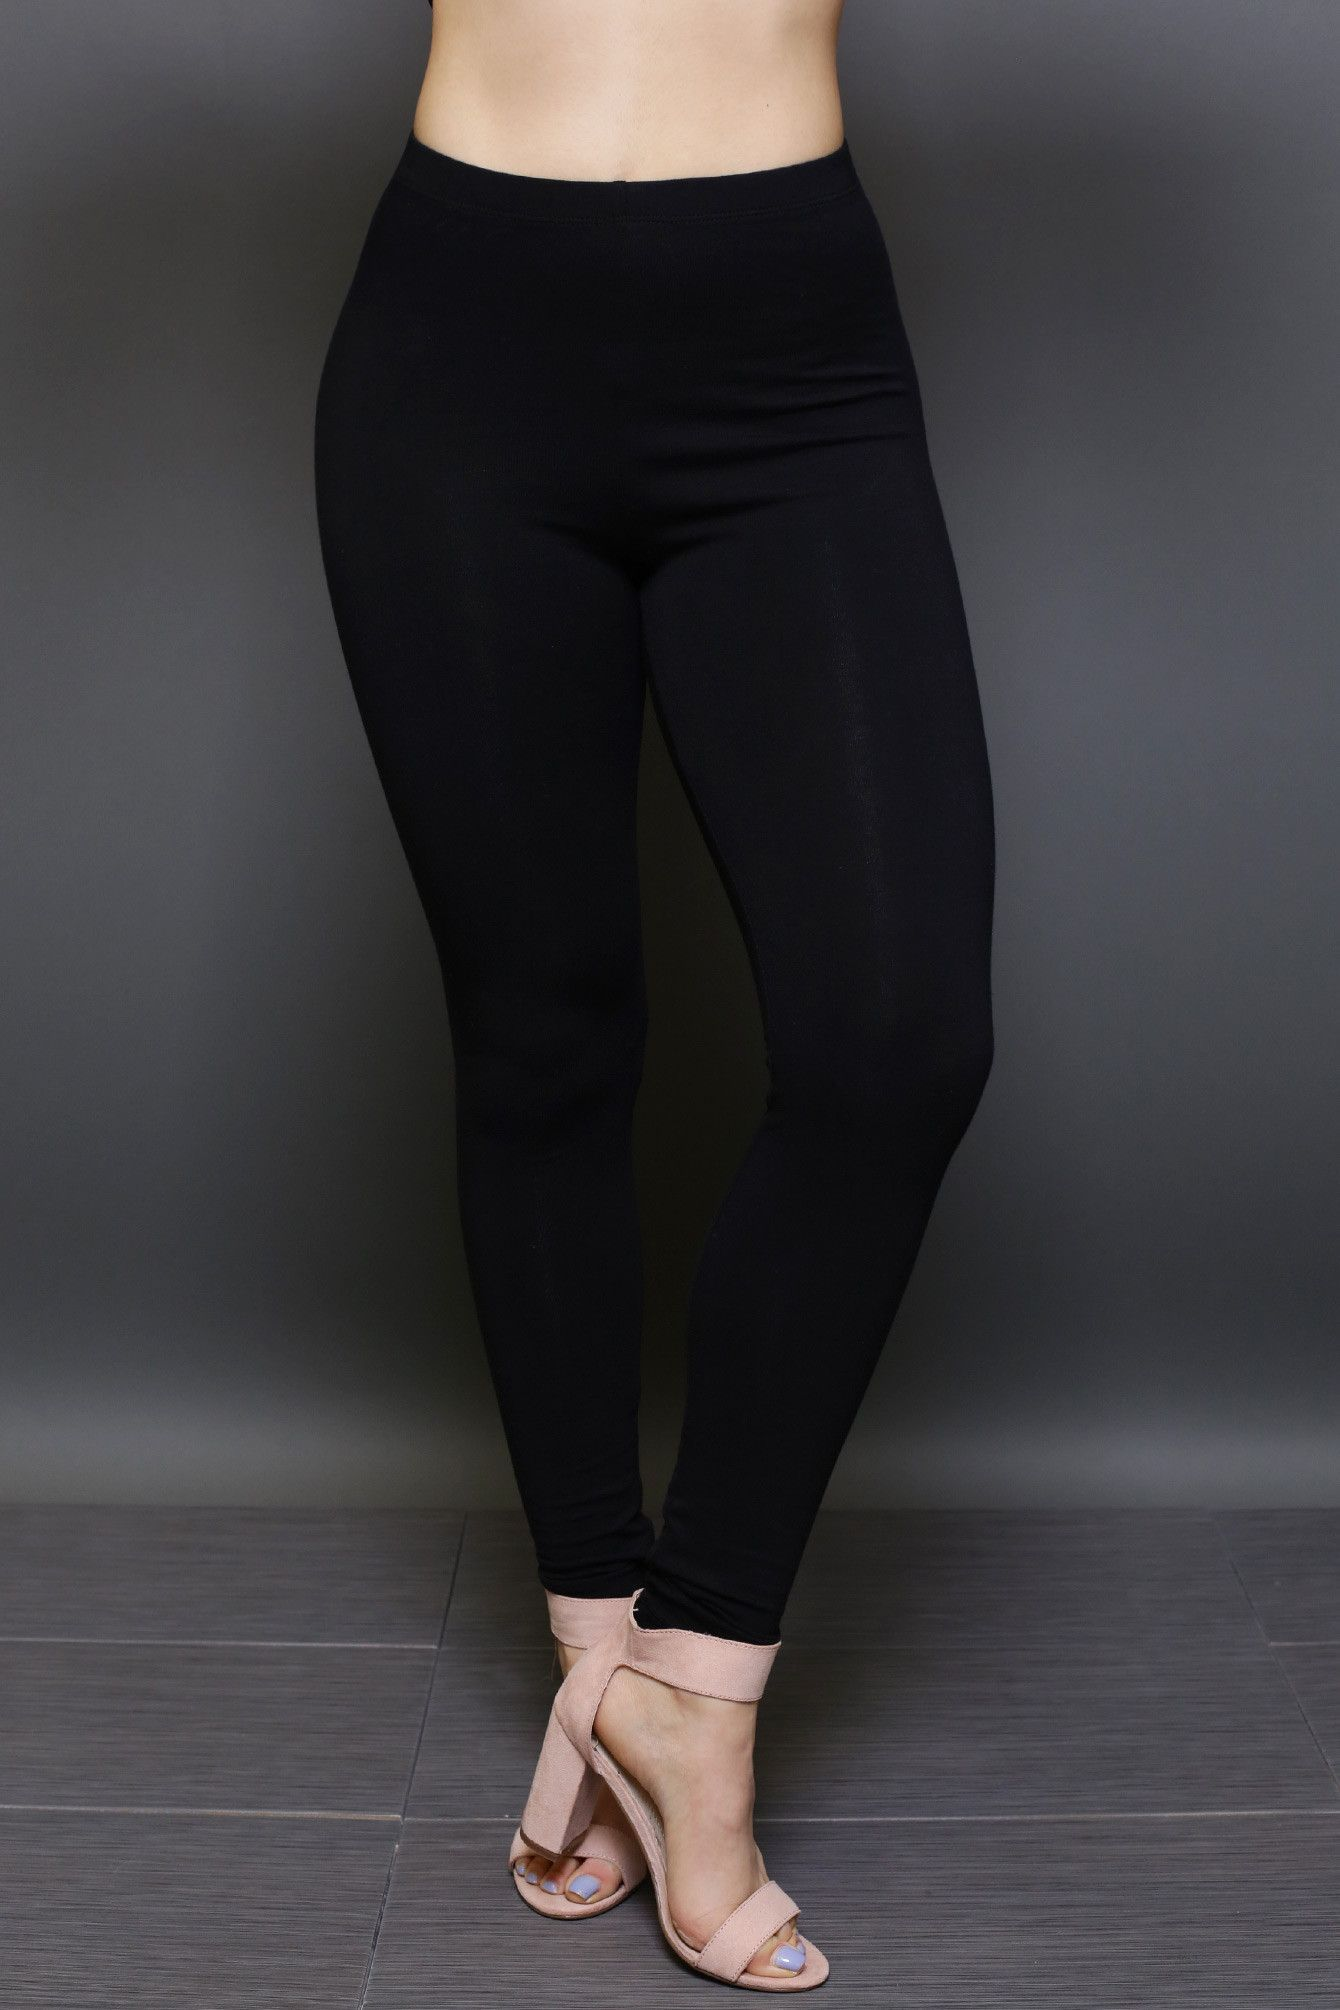 f81984594c7a2 Plain Black Leggings - Sale! Up to 75% OFF! Shot at Stylizio for women's  and men's designer handbags, luxury sunglasses, watches, jewelry, purses,  wallets, ...